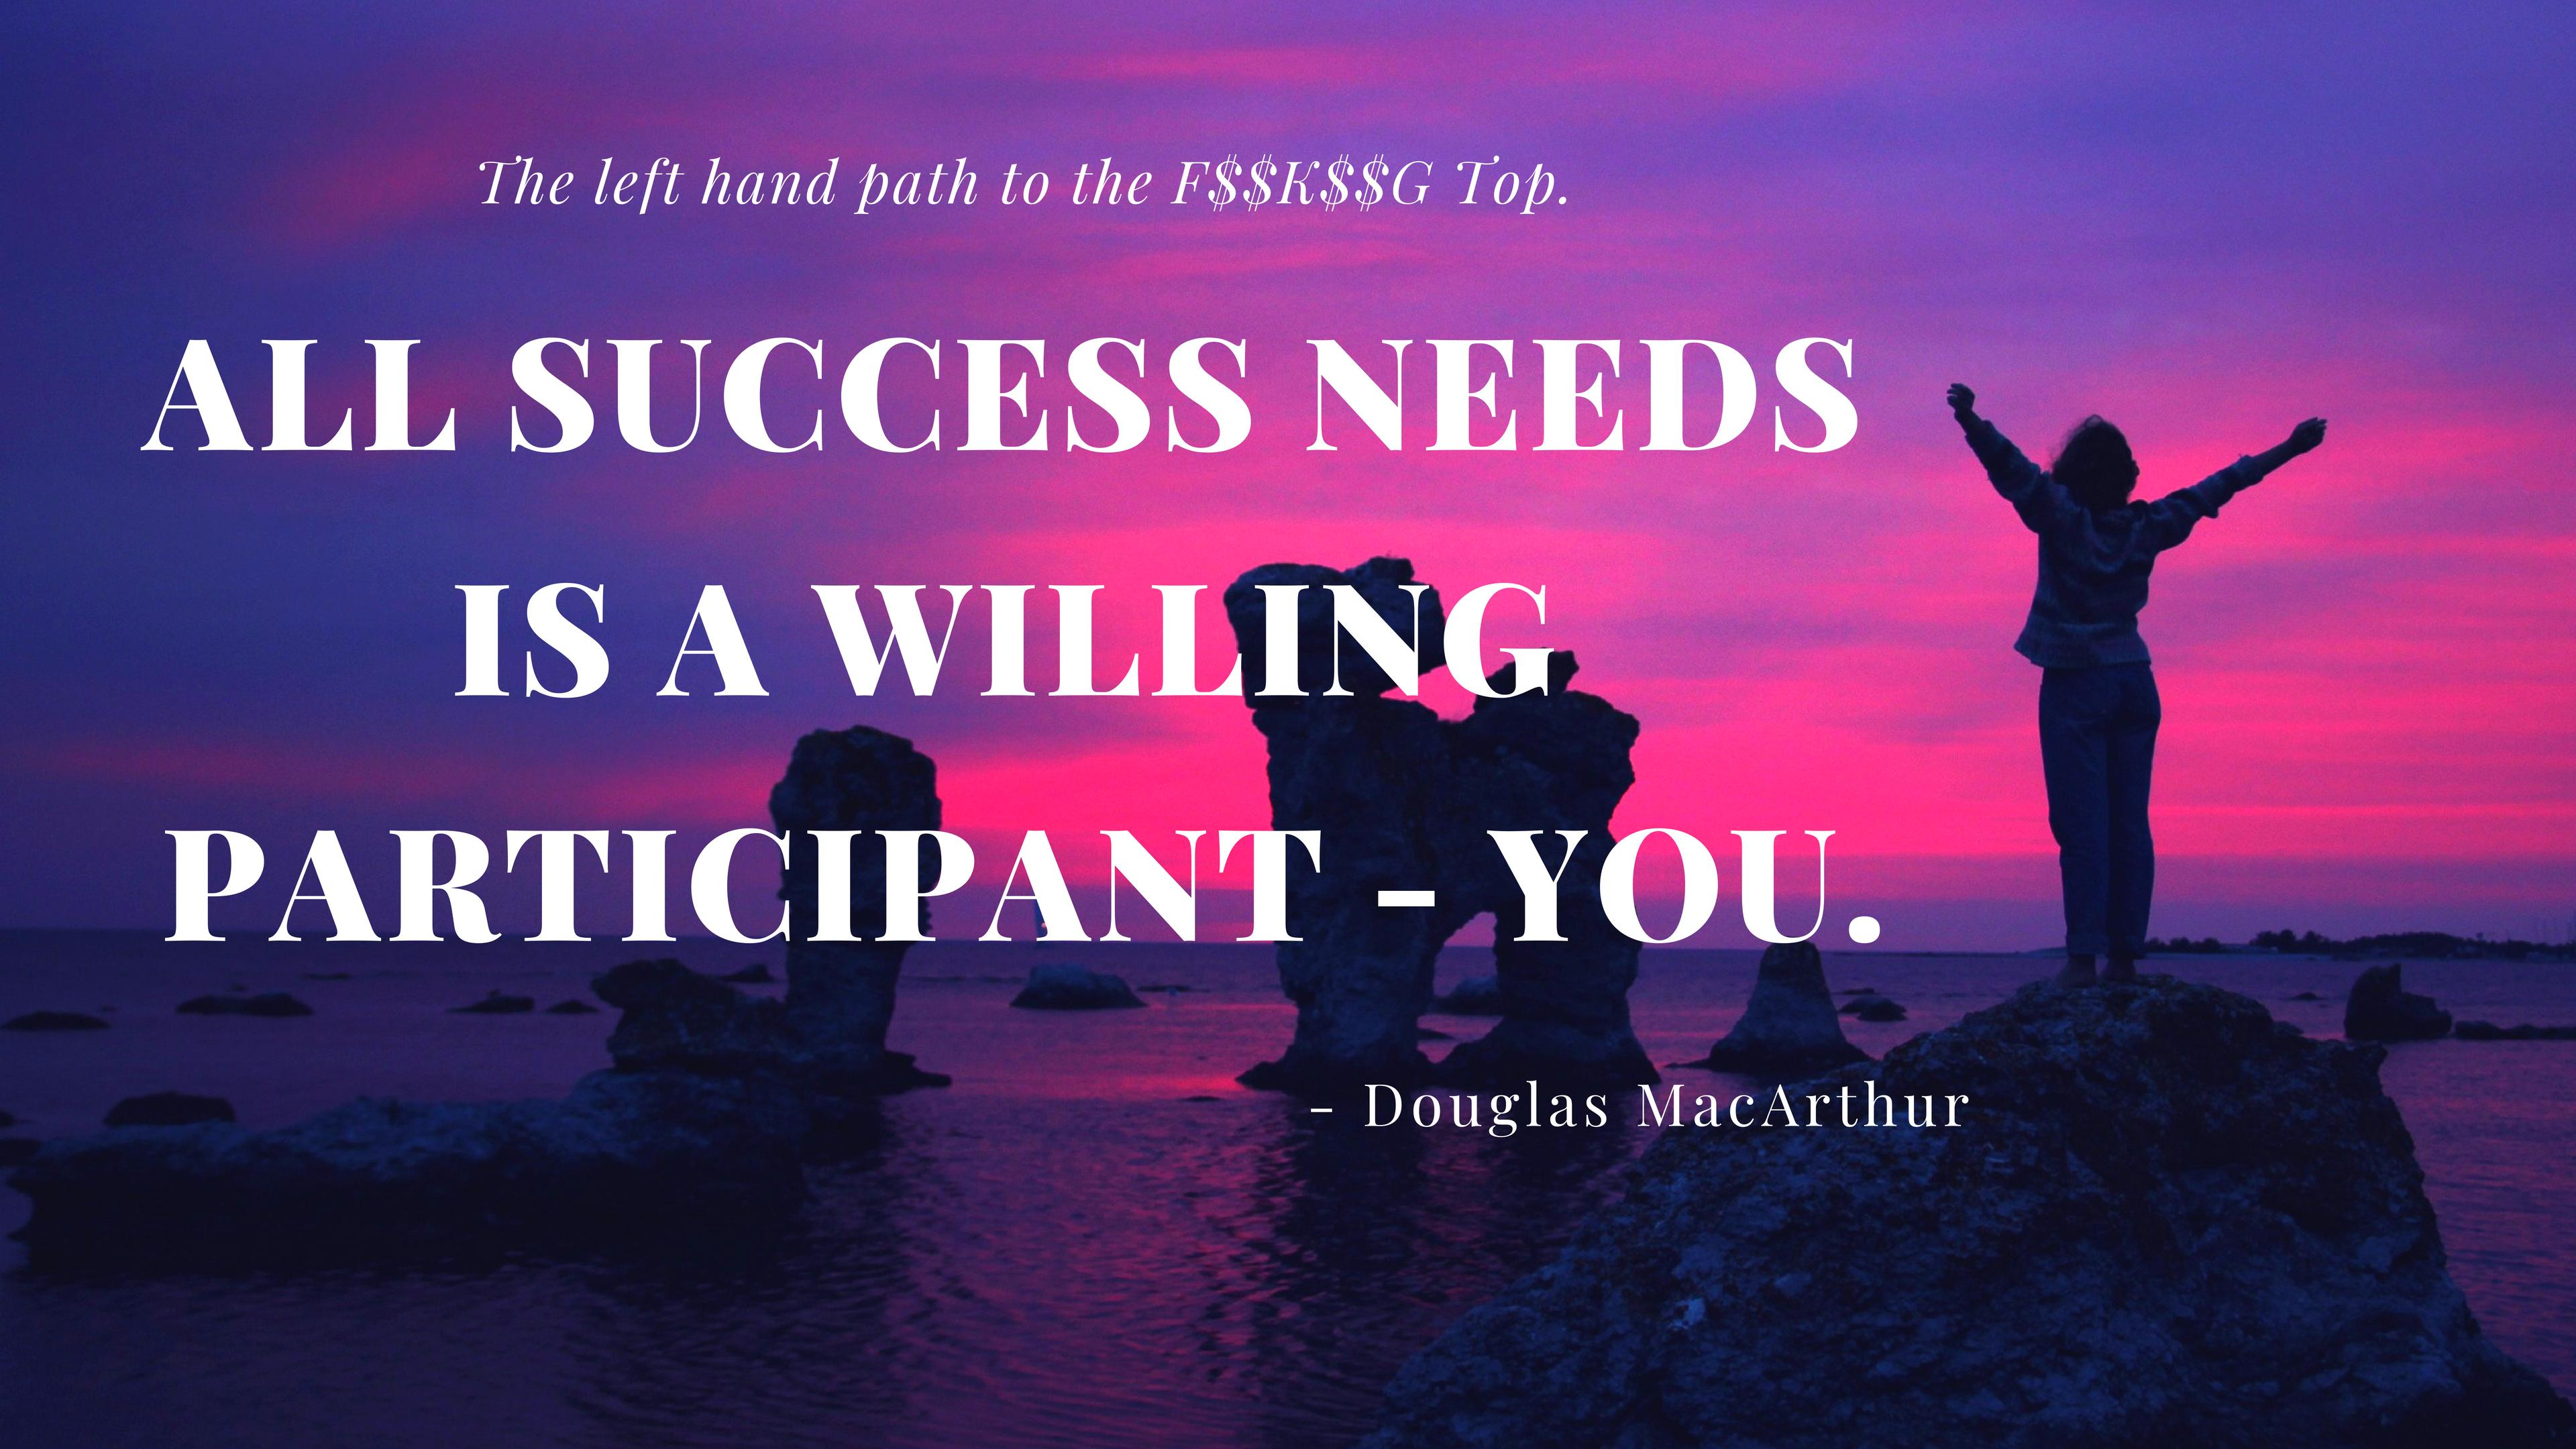 All success needs – Douglas MacArthur [3840 x 2160] [OC]